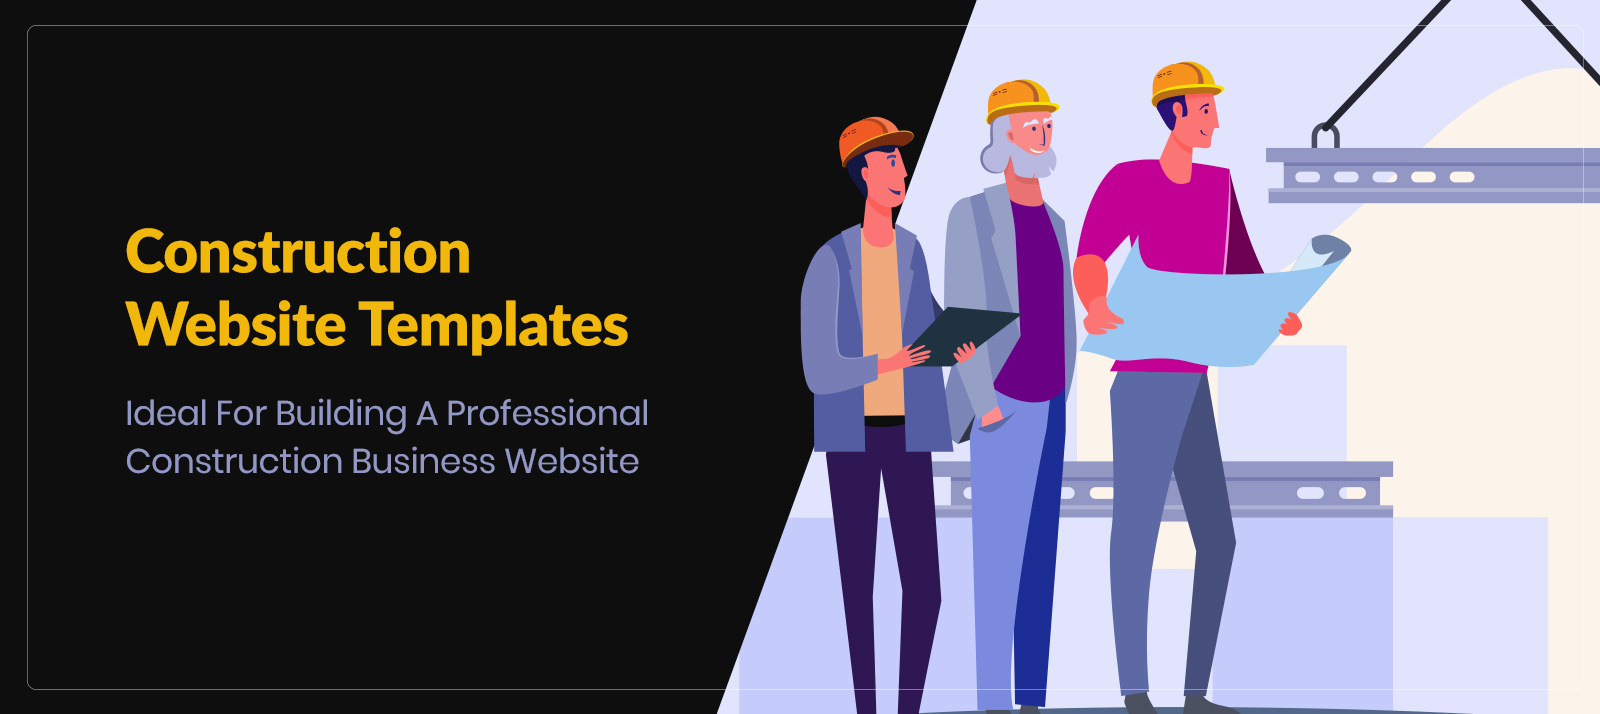 10+ Construction Website Templates Ideal For Building A Professional Construction Business Website